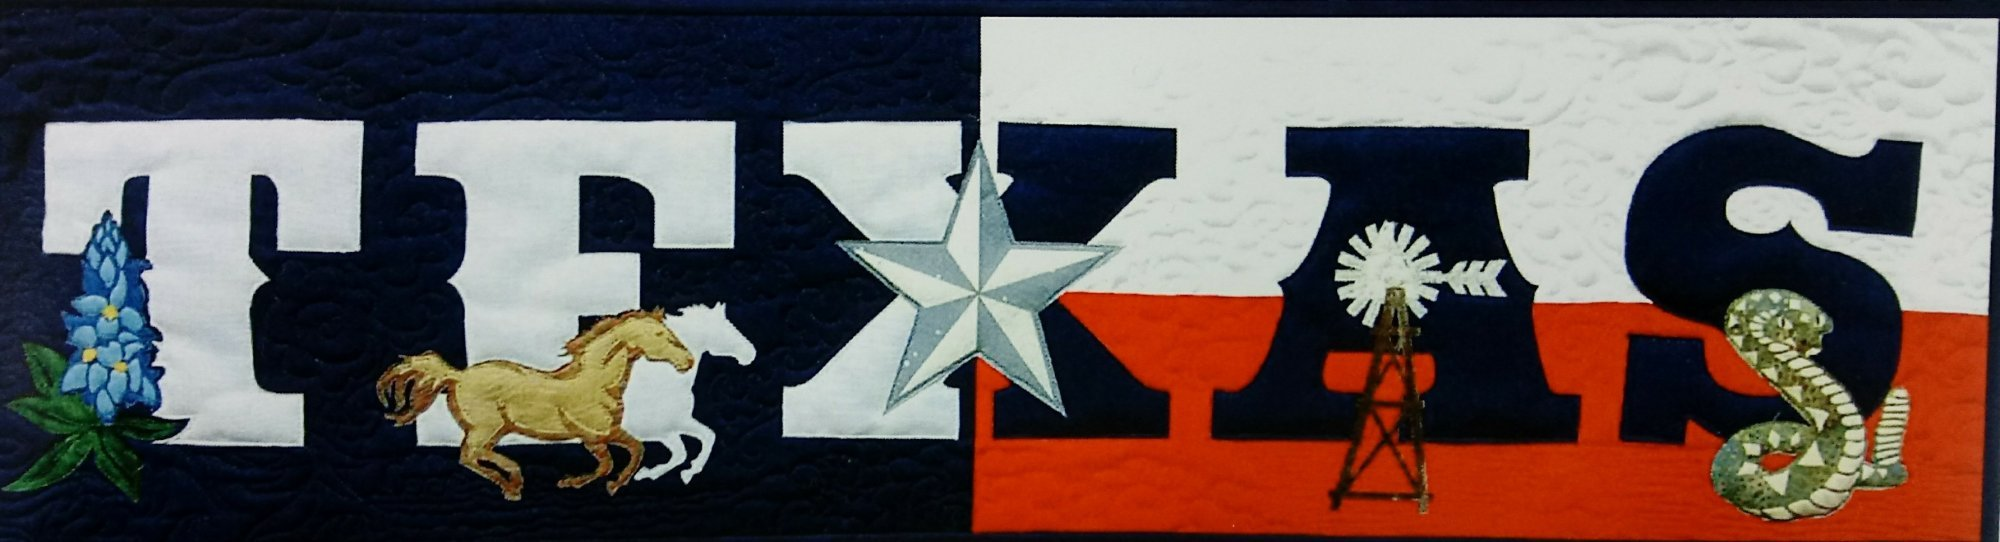 Laser Cut Texas Banner from the State Pride Collection by Westfield Laser Design